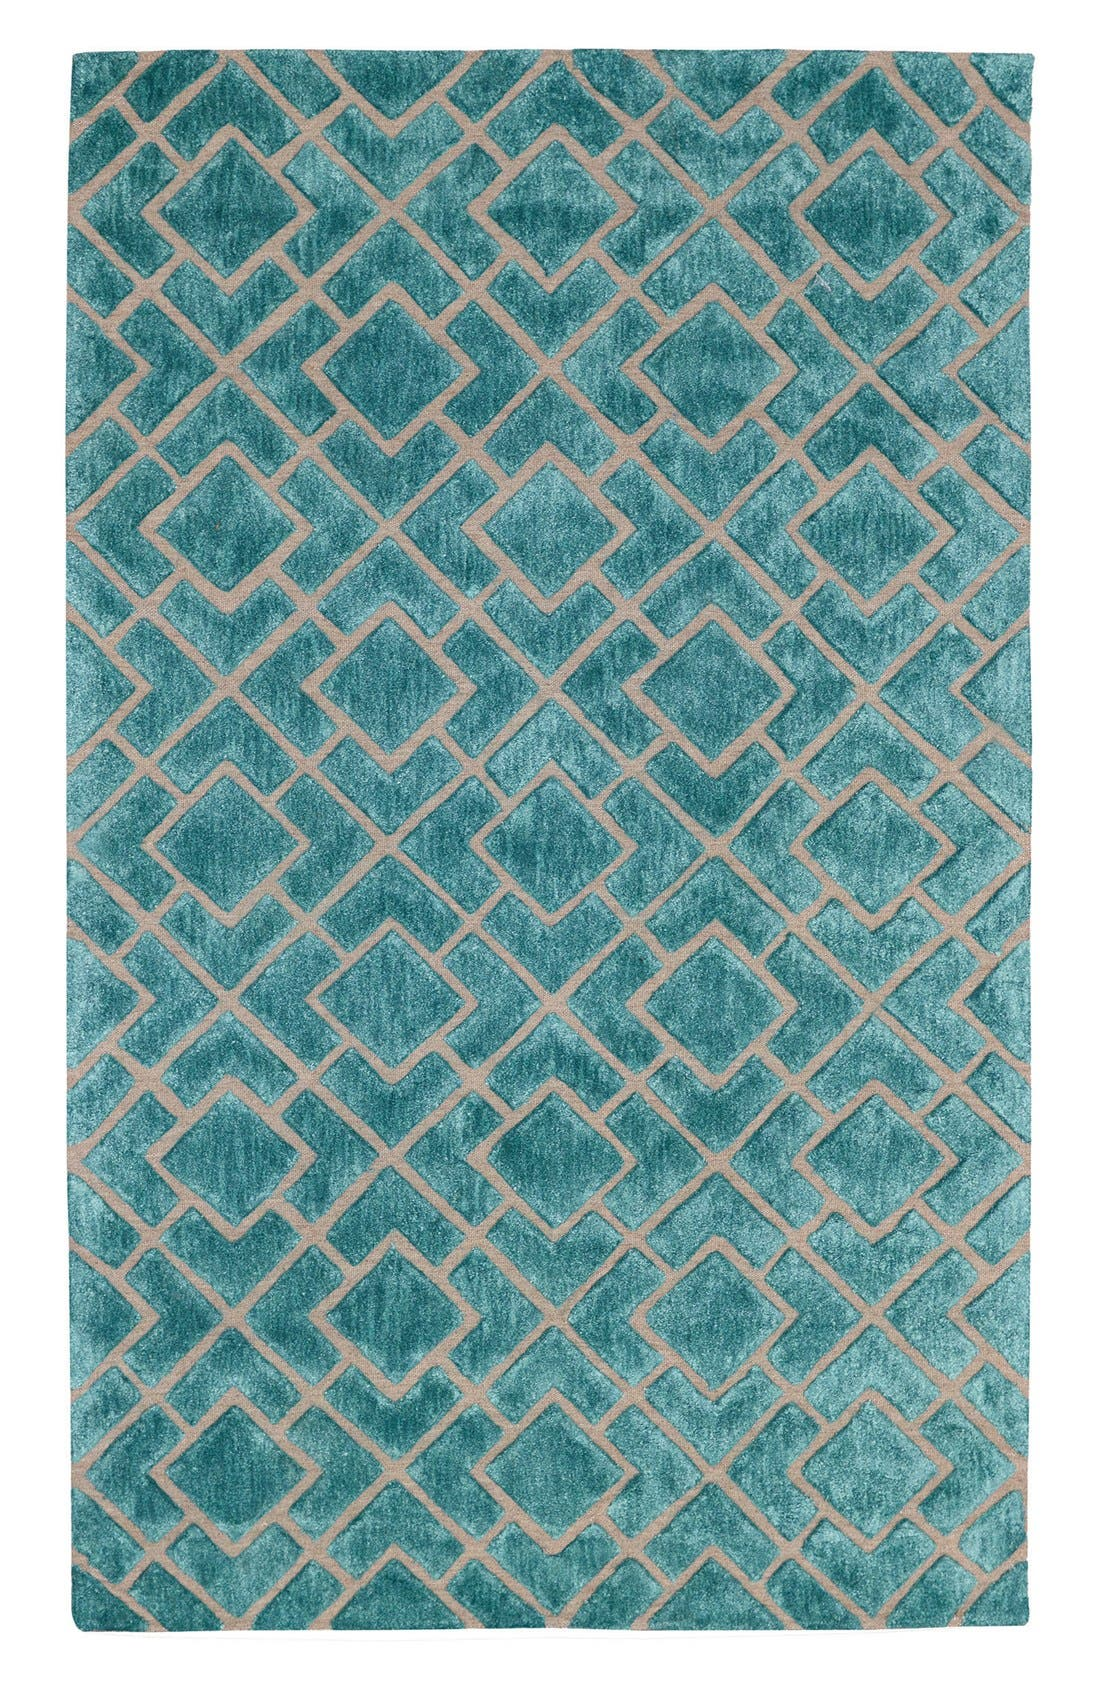 'Over Tufted - Turquoise' Rug,                             Main thumbnail 1, color,                             440